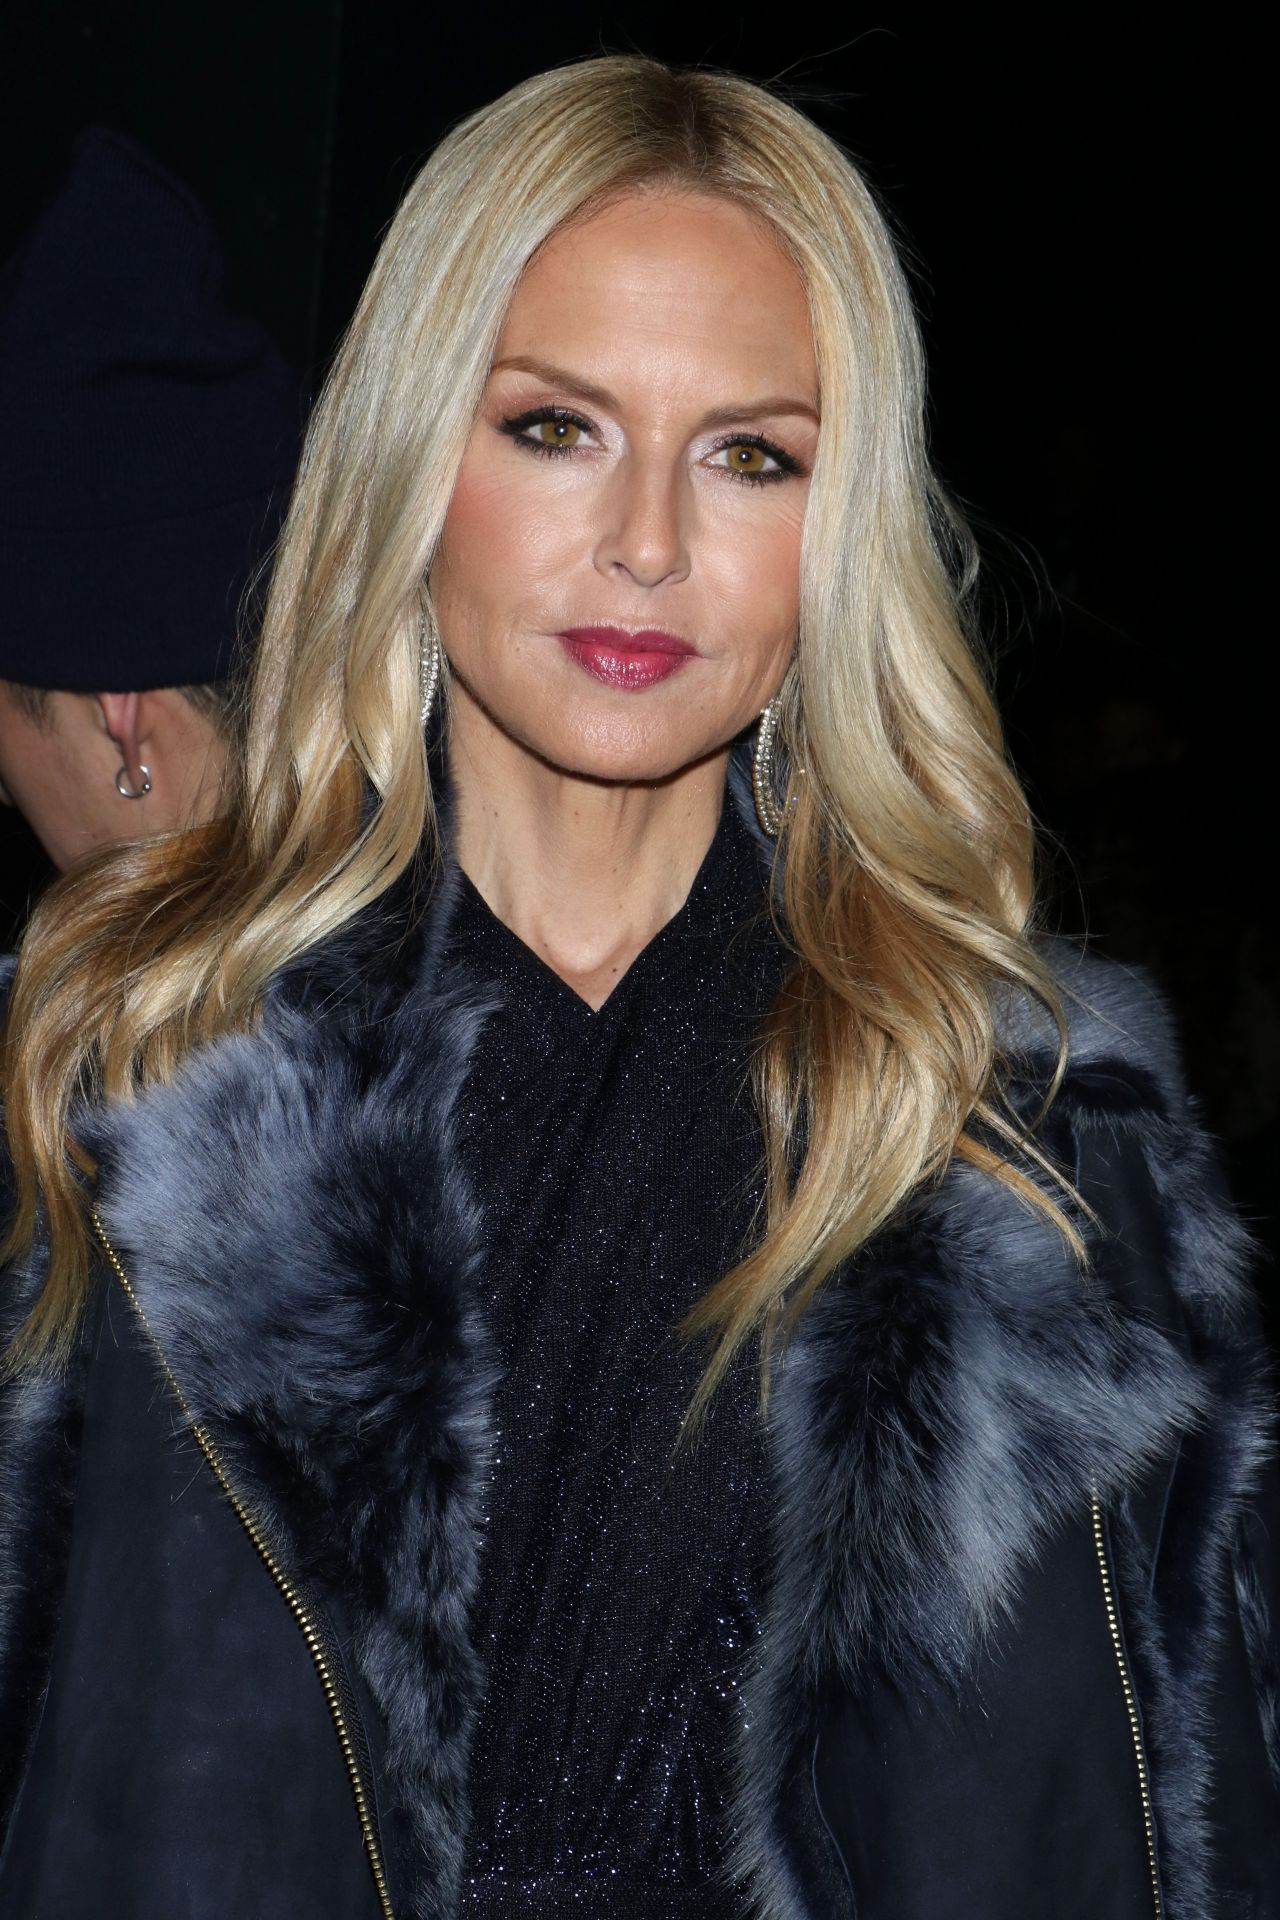 Rachel Zoe Latest Photos Celebmafia